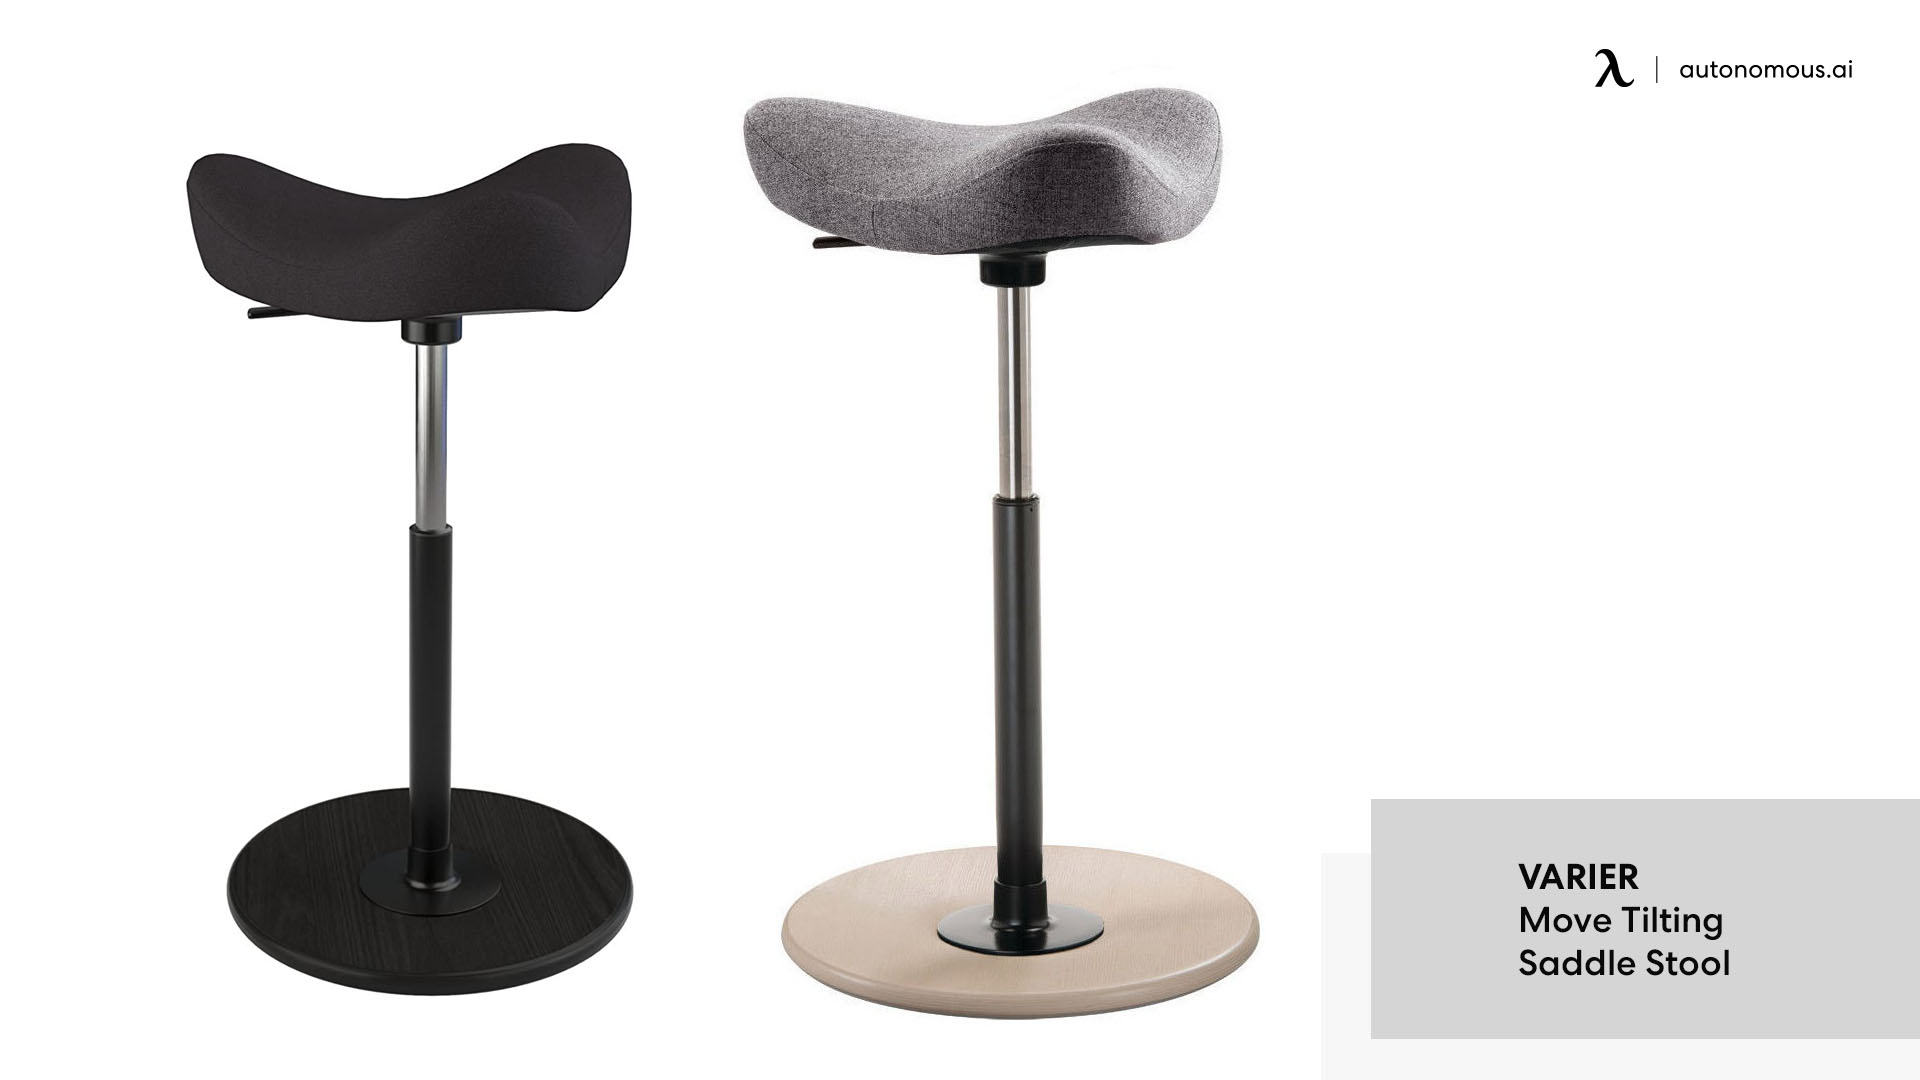 Focal Upright Active Learning Seat